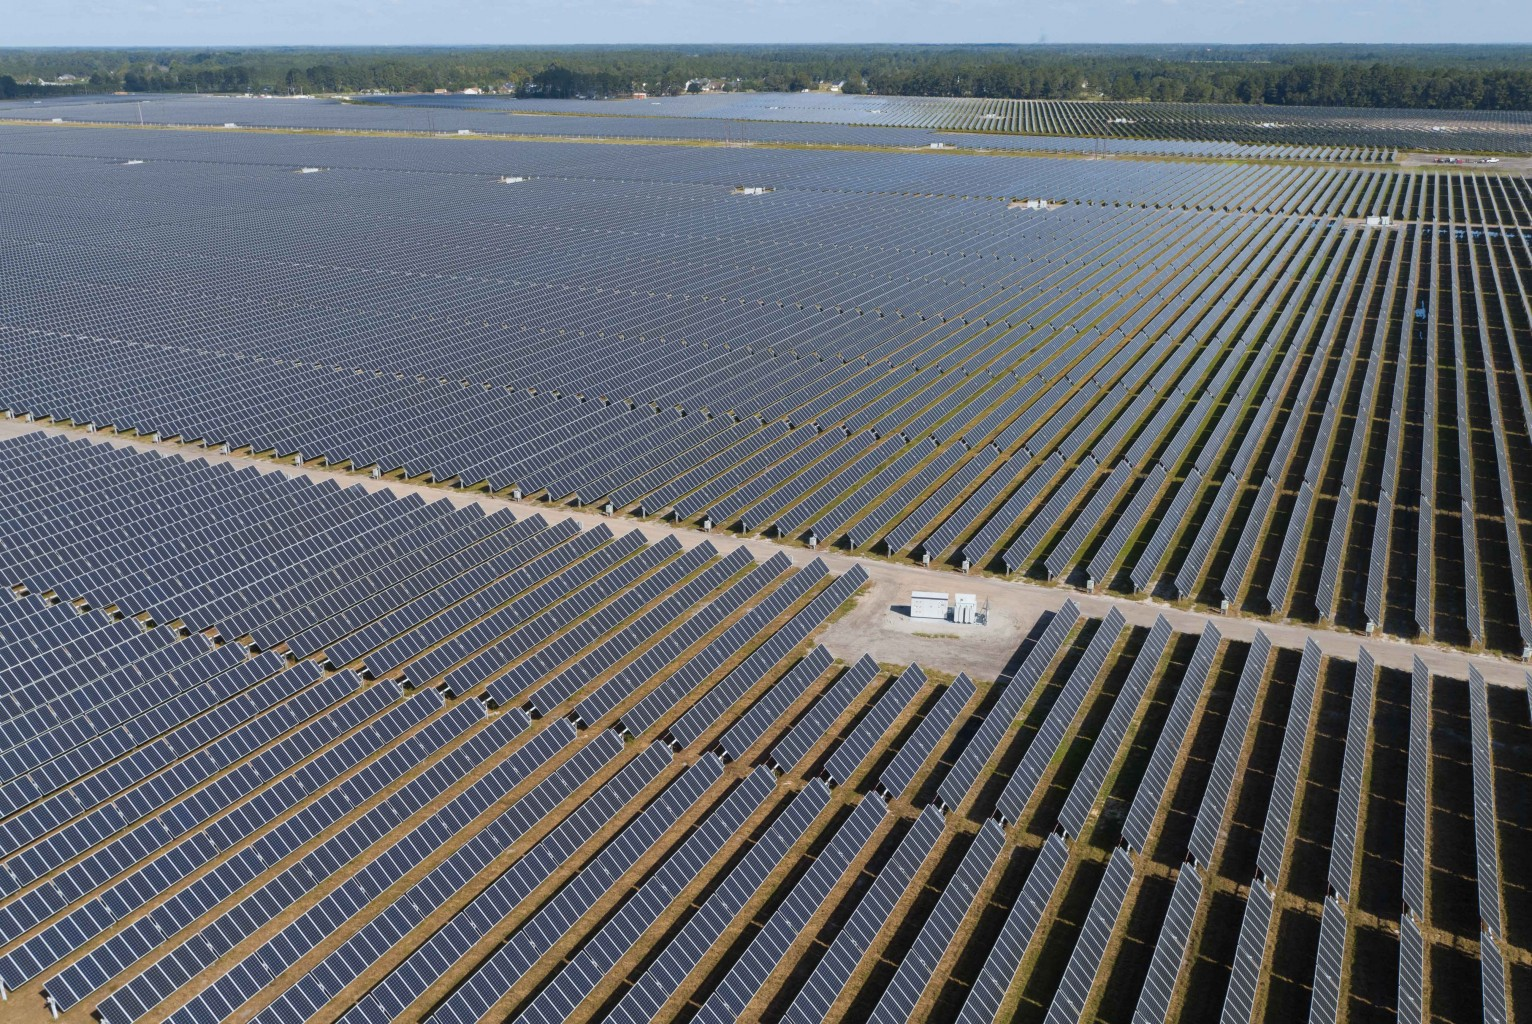 Canadian Solar subsidiary, Recurrent Energy Announces Commercial Operation of 71 MW North Carolina Solar Project